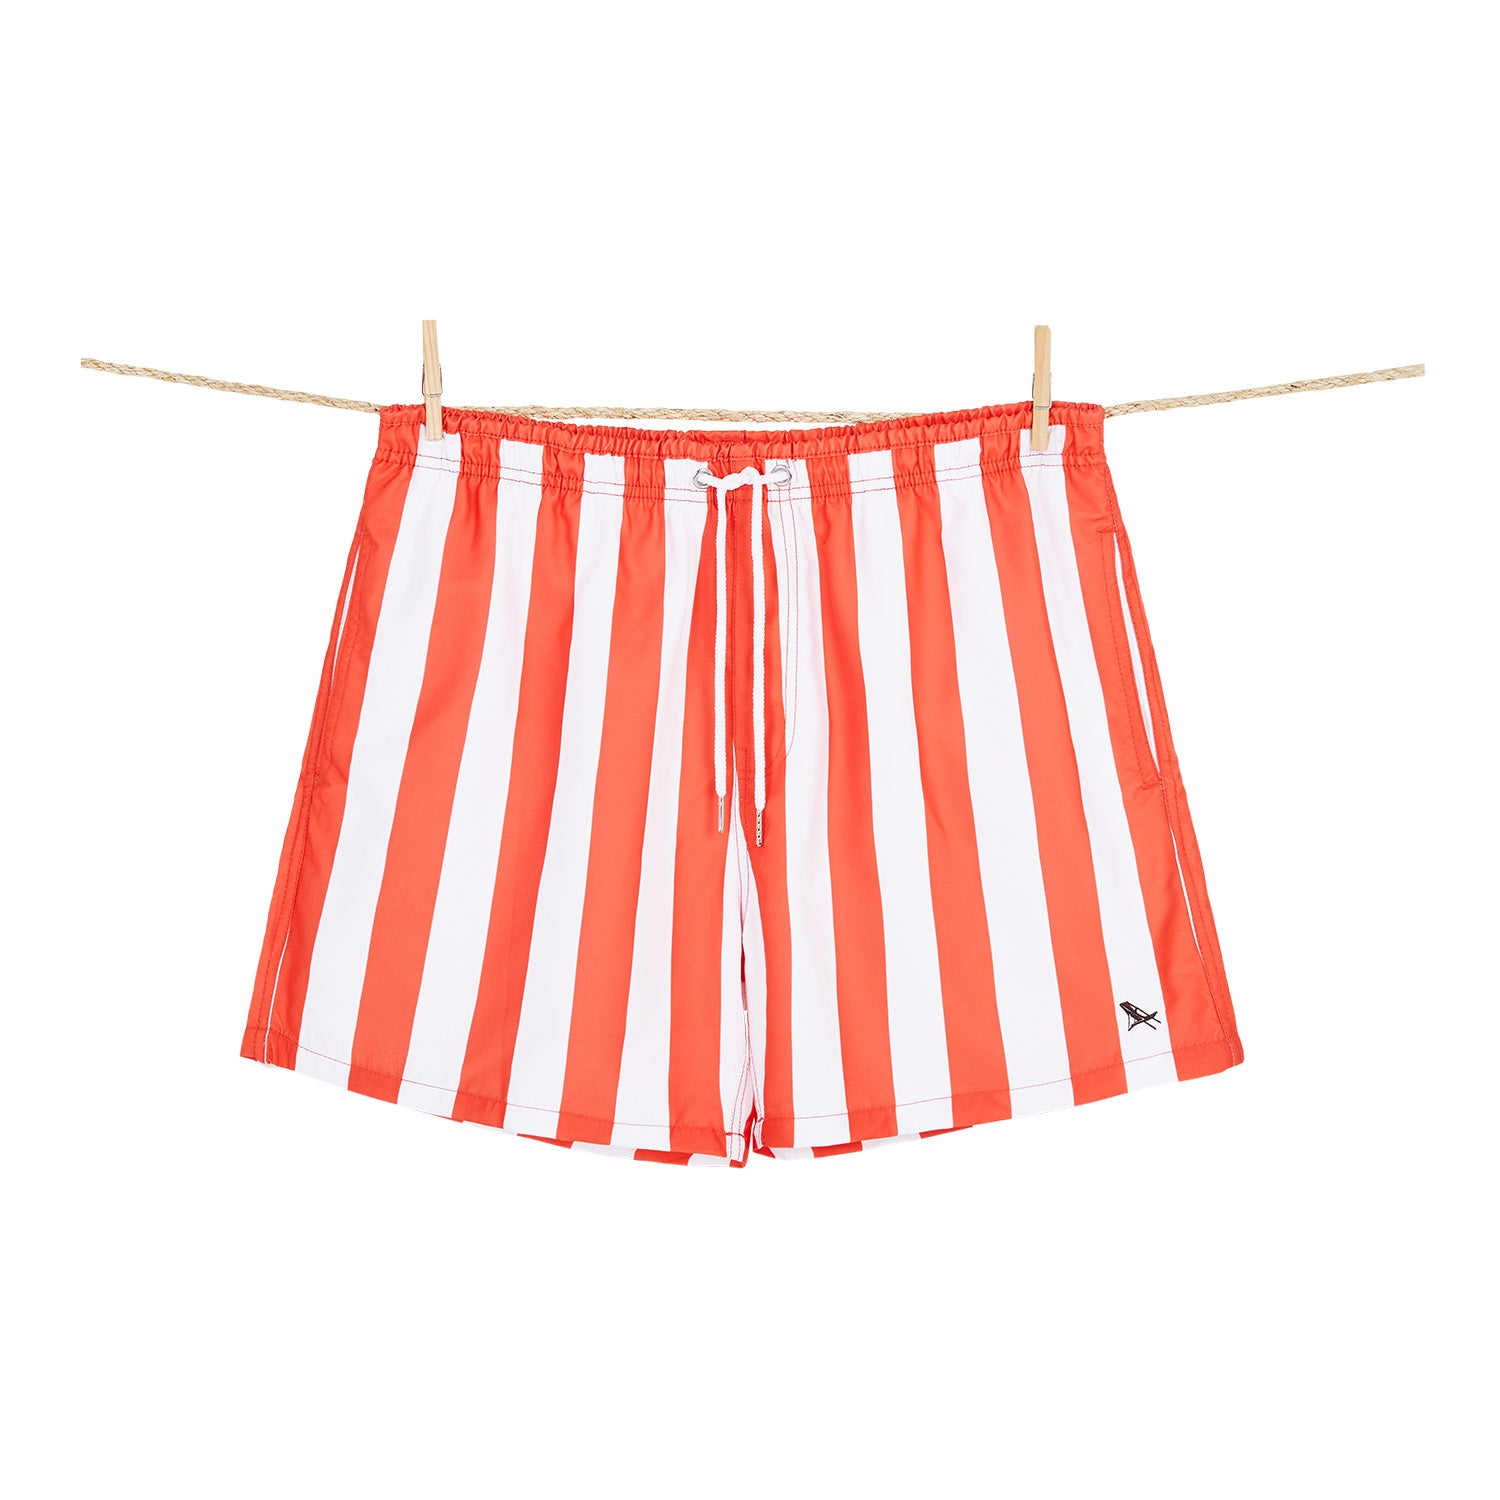 Waikiki Coral Red Swim Shorts